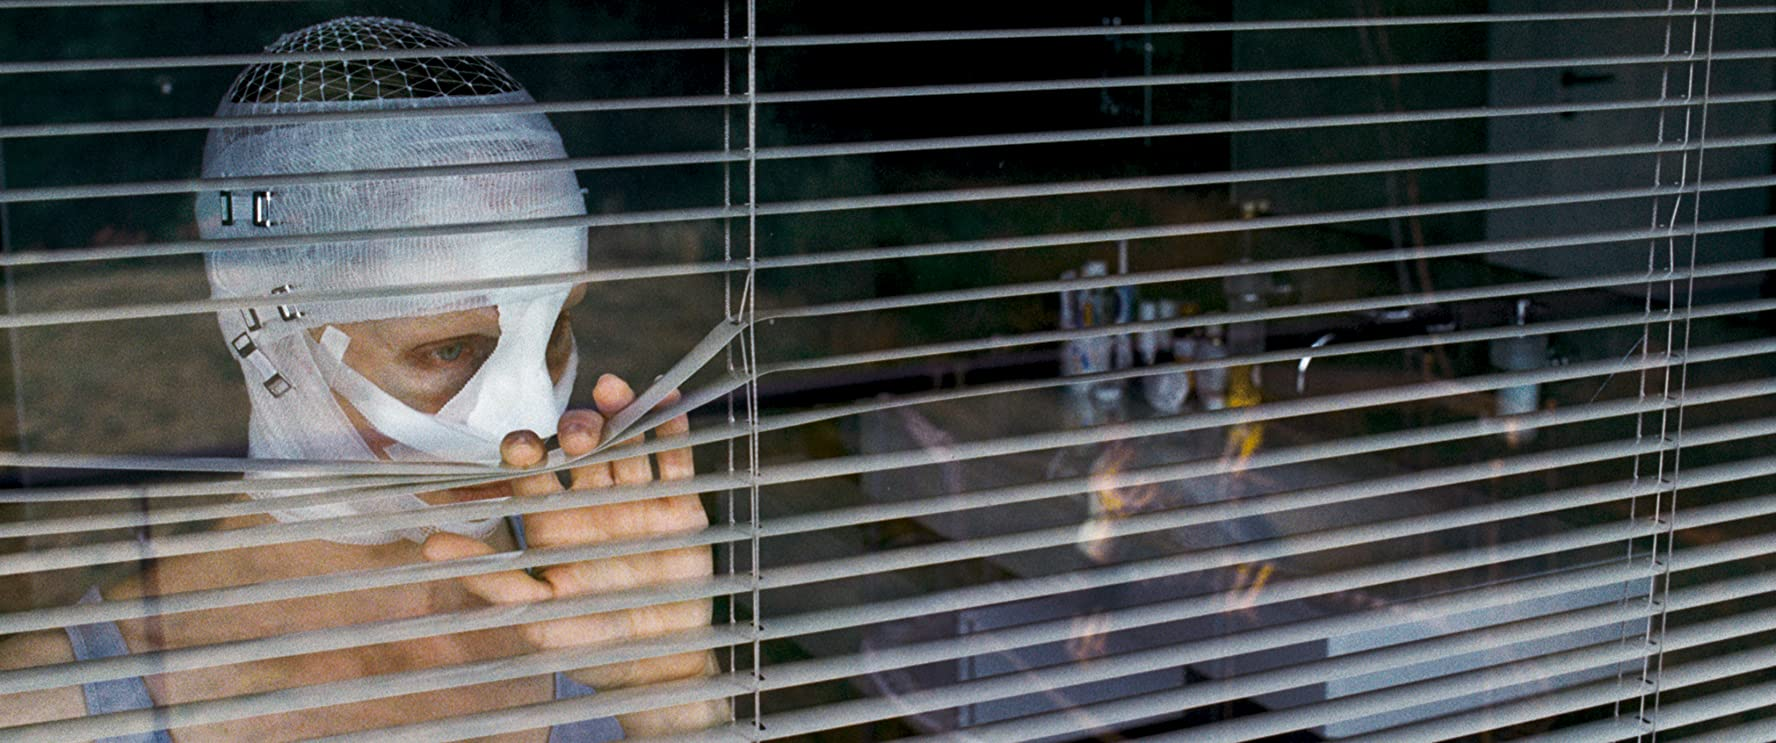 Best Foreign Horror Movies - Goodnight Mommy